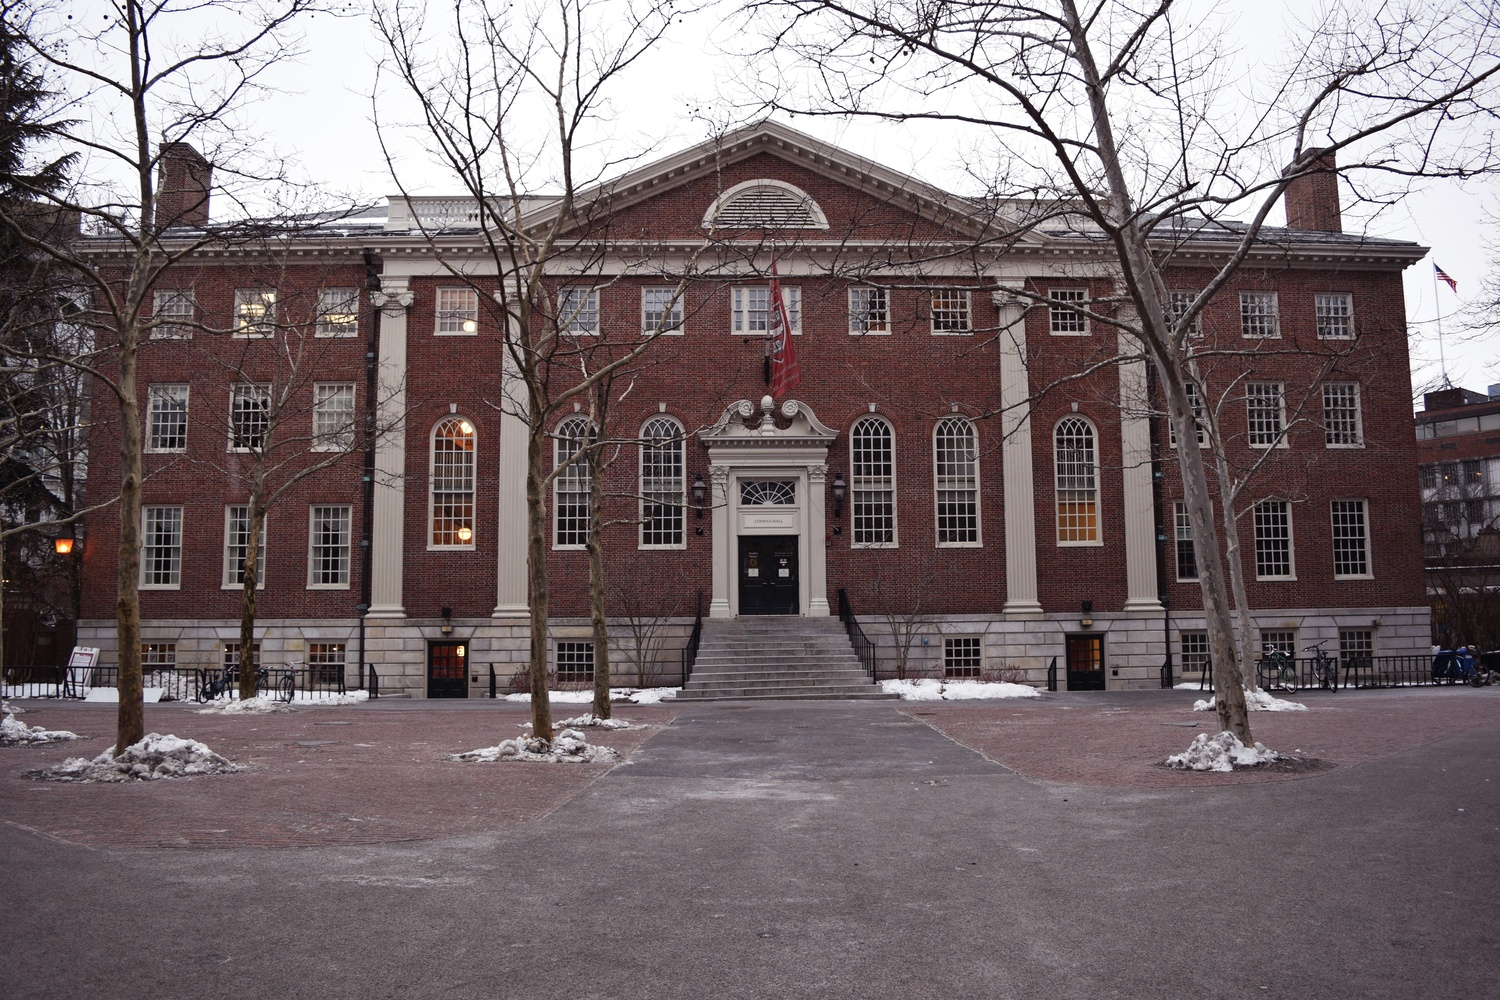 Lehman Hall is the main building for the Harvard Graduate School of Arts and Sciences.